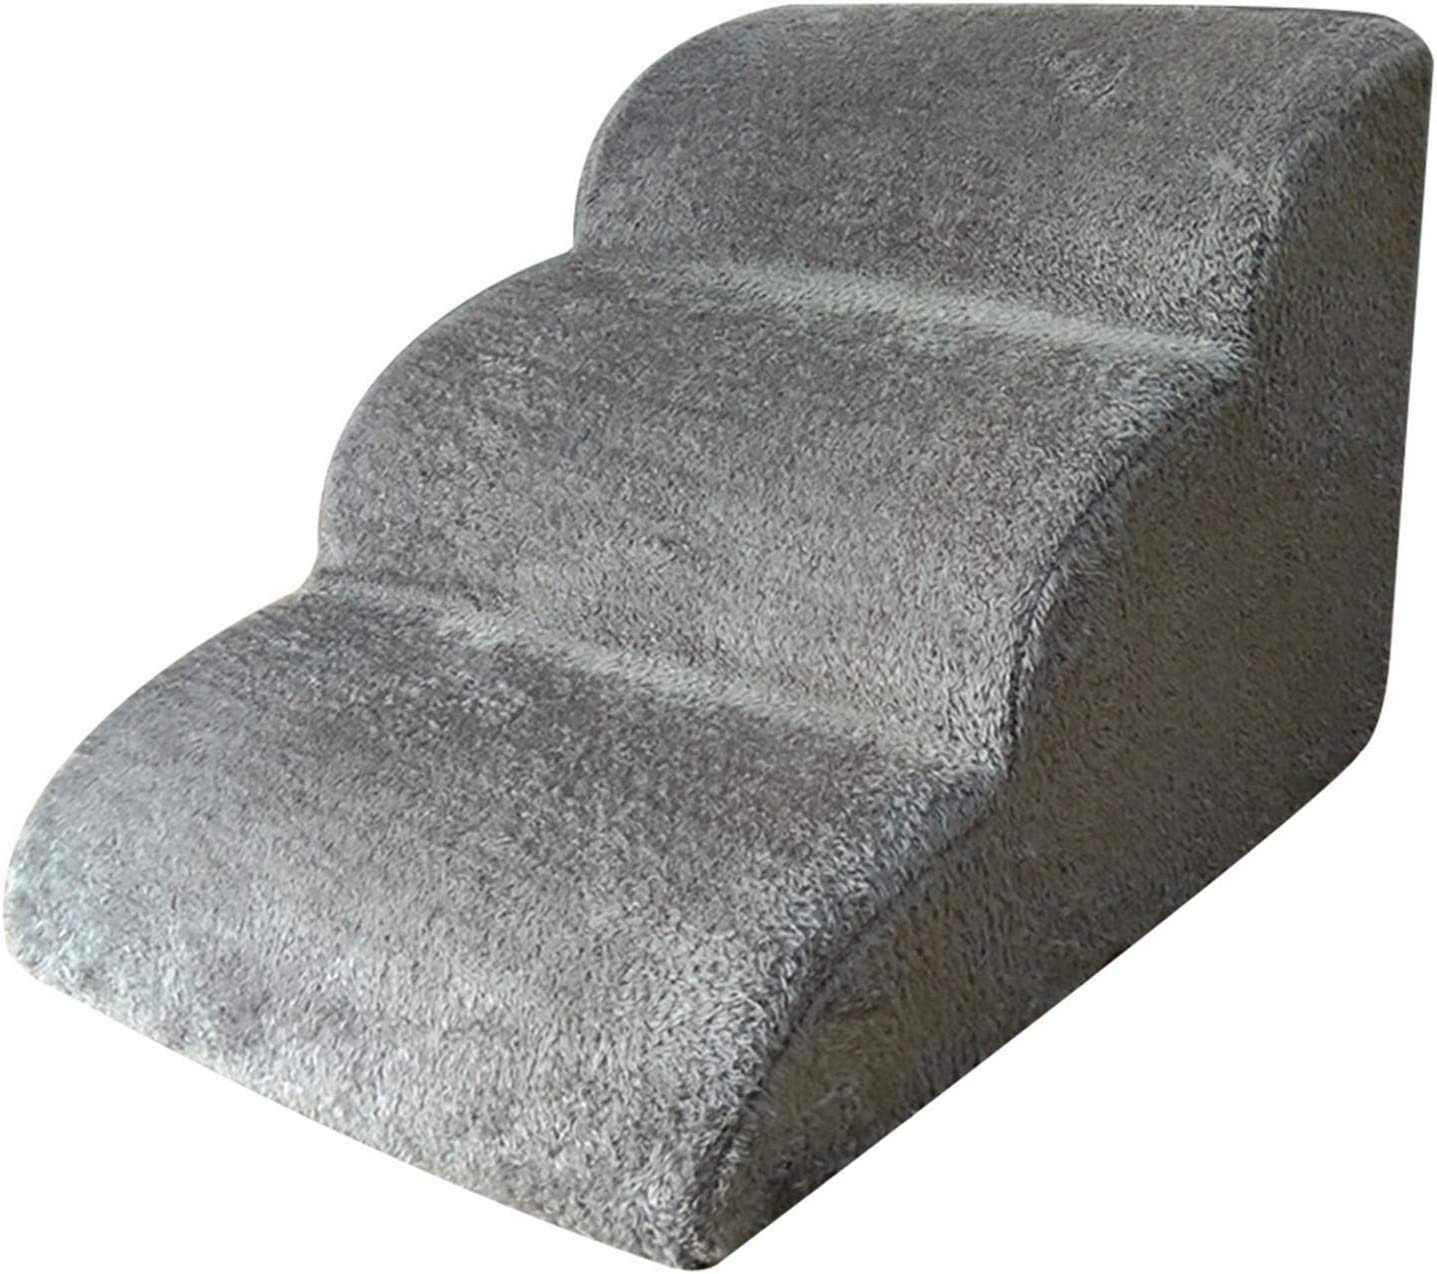 Per Newly 60x42x39 cm Pet Stairs for Award-winning store Bed Step,Sofa Dogs Limited price Ladder